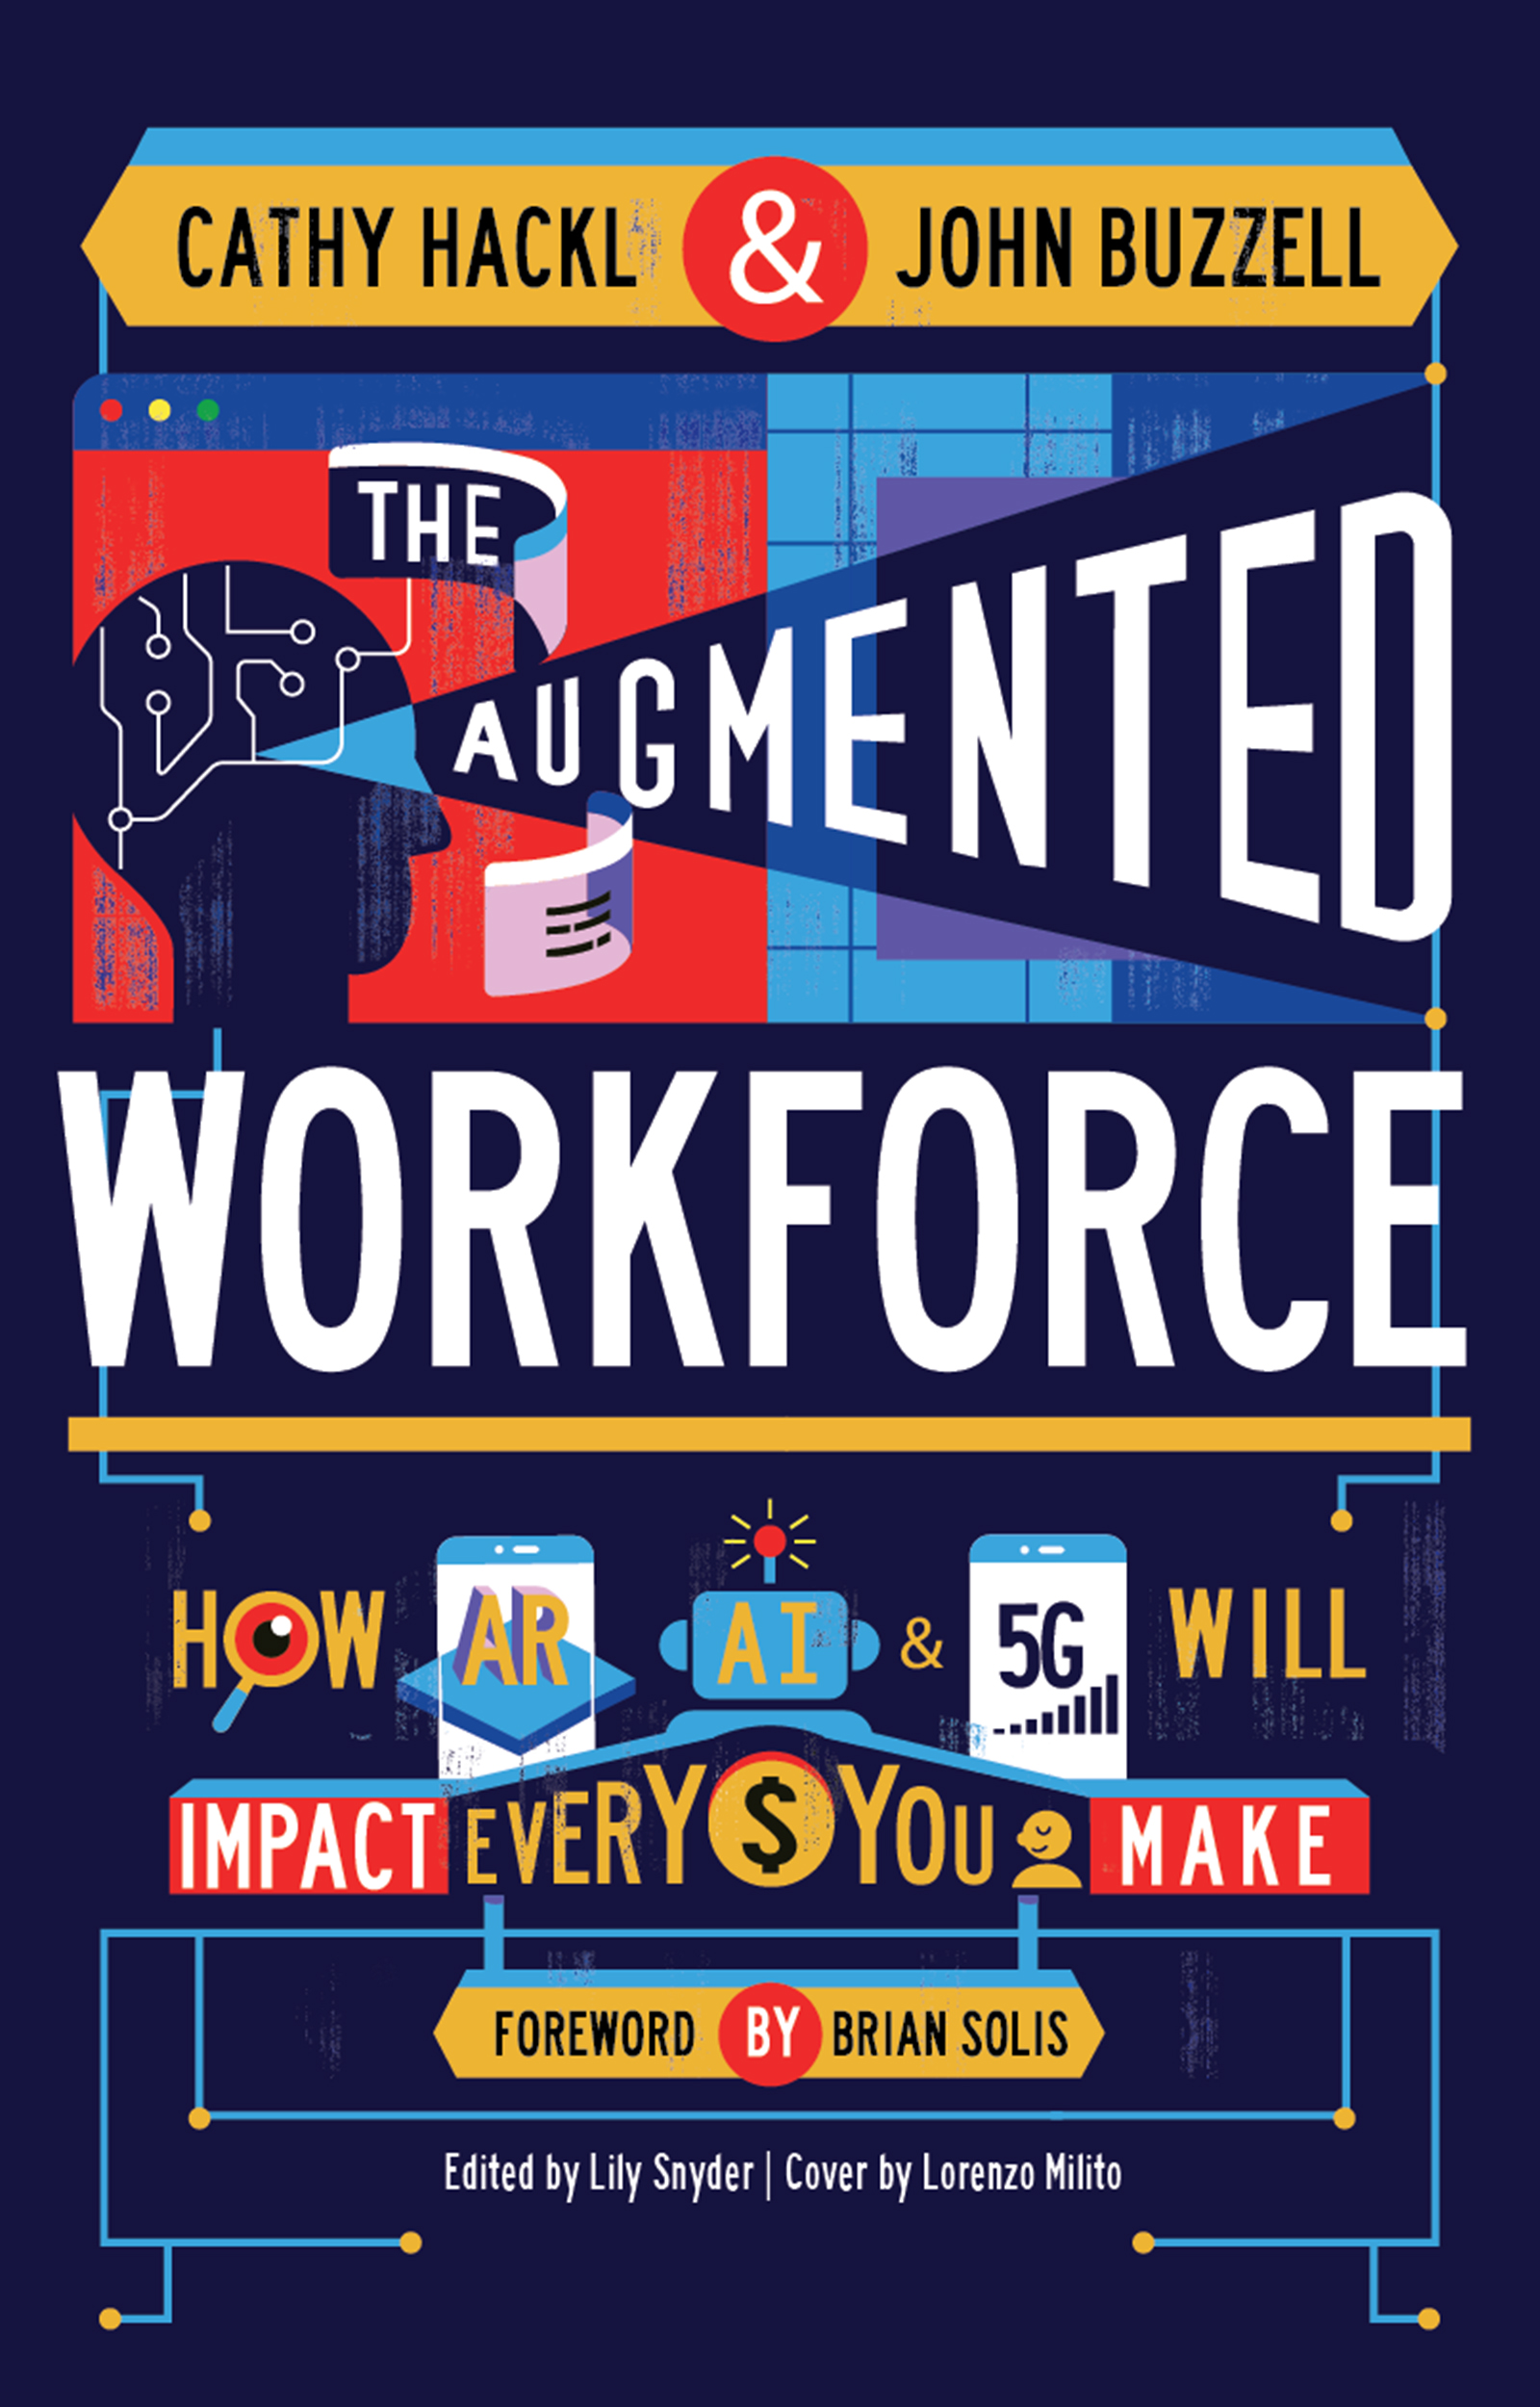 Front cover image of the book The Augmented Workforce - How AR, AI, and 5G Will Impact Every Dollar You Make by Cathy Hackl and John Buzzell